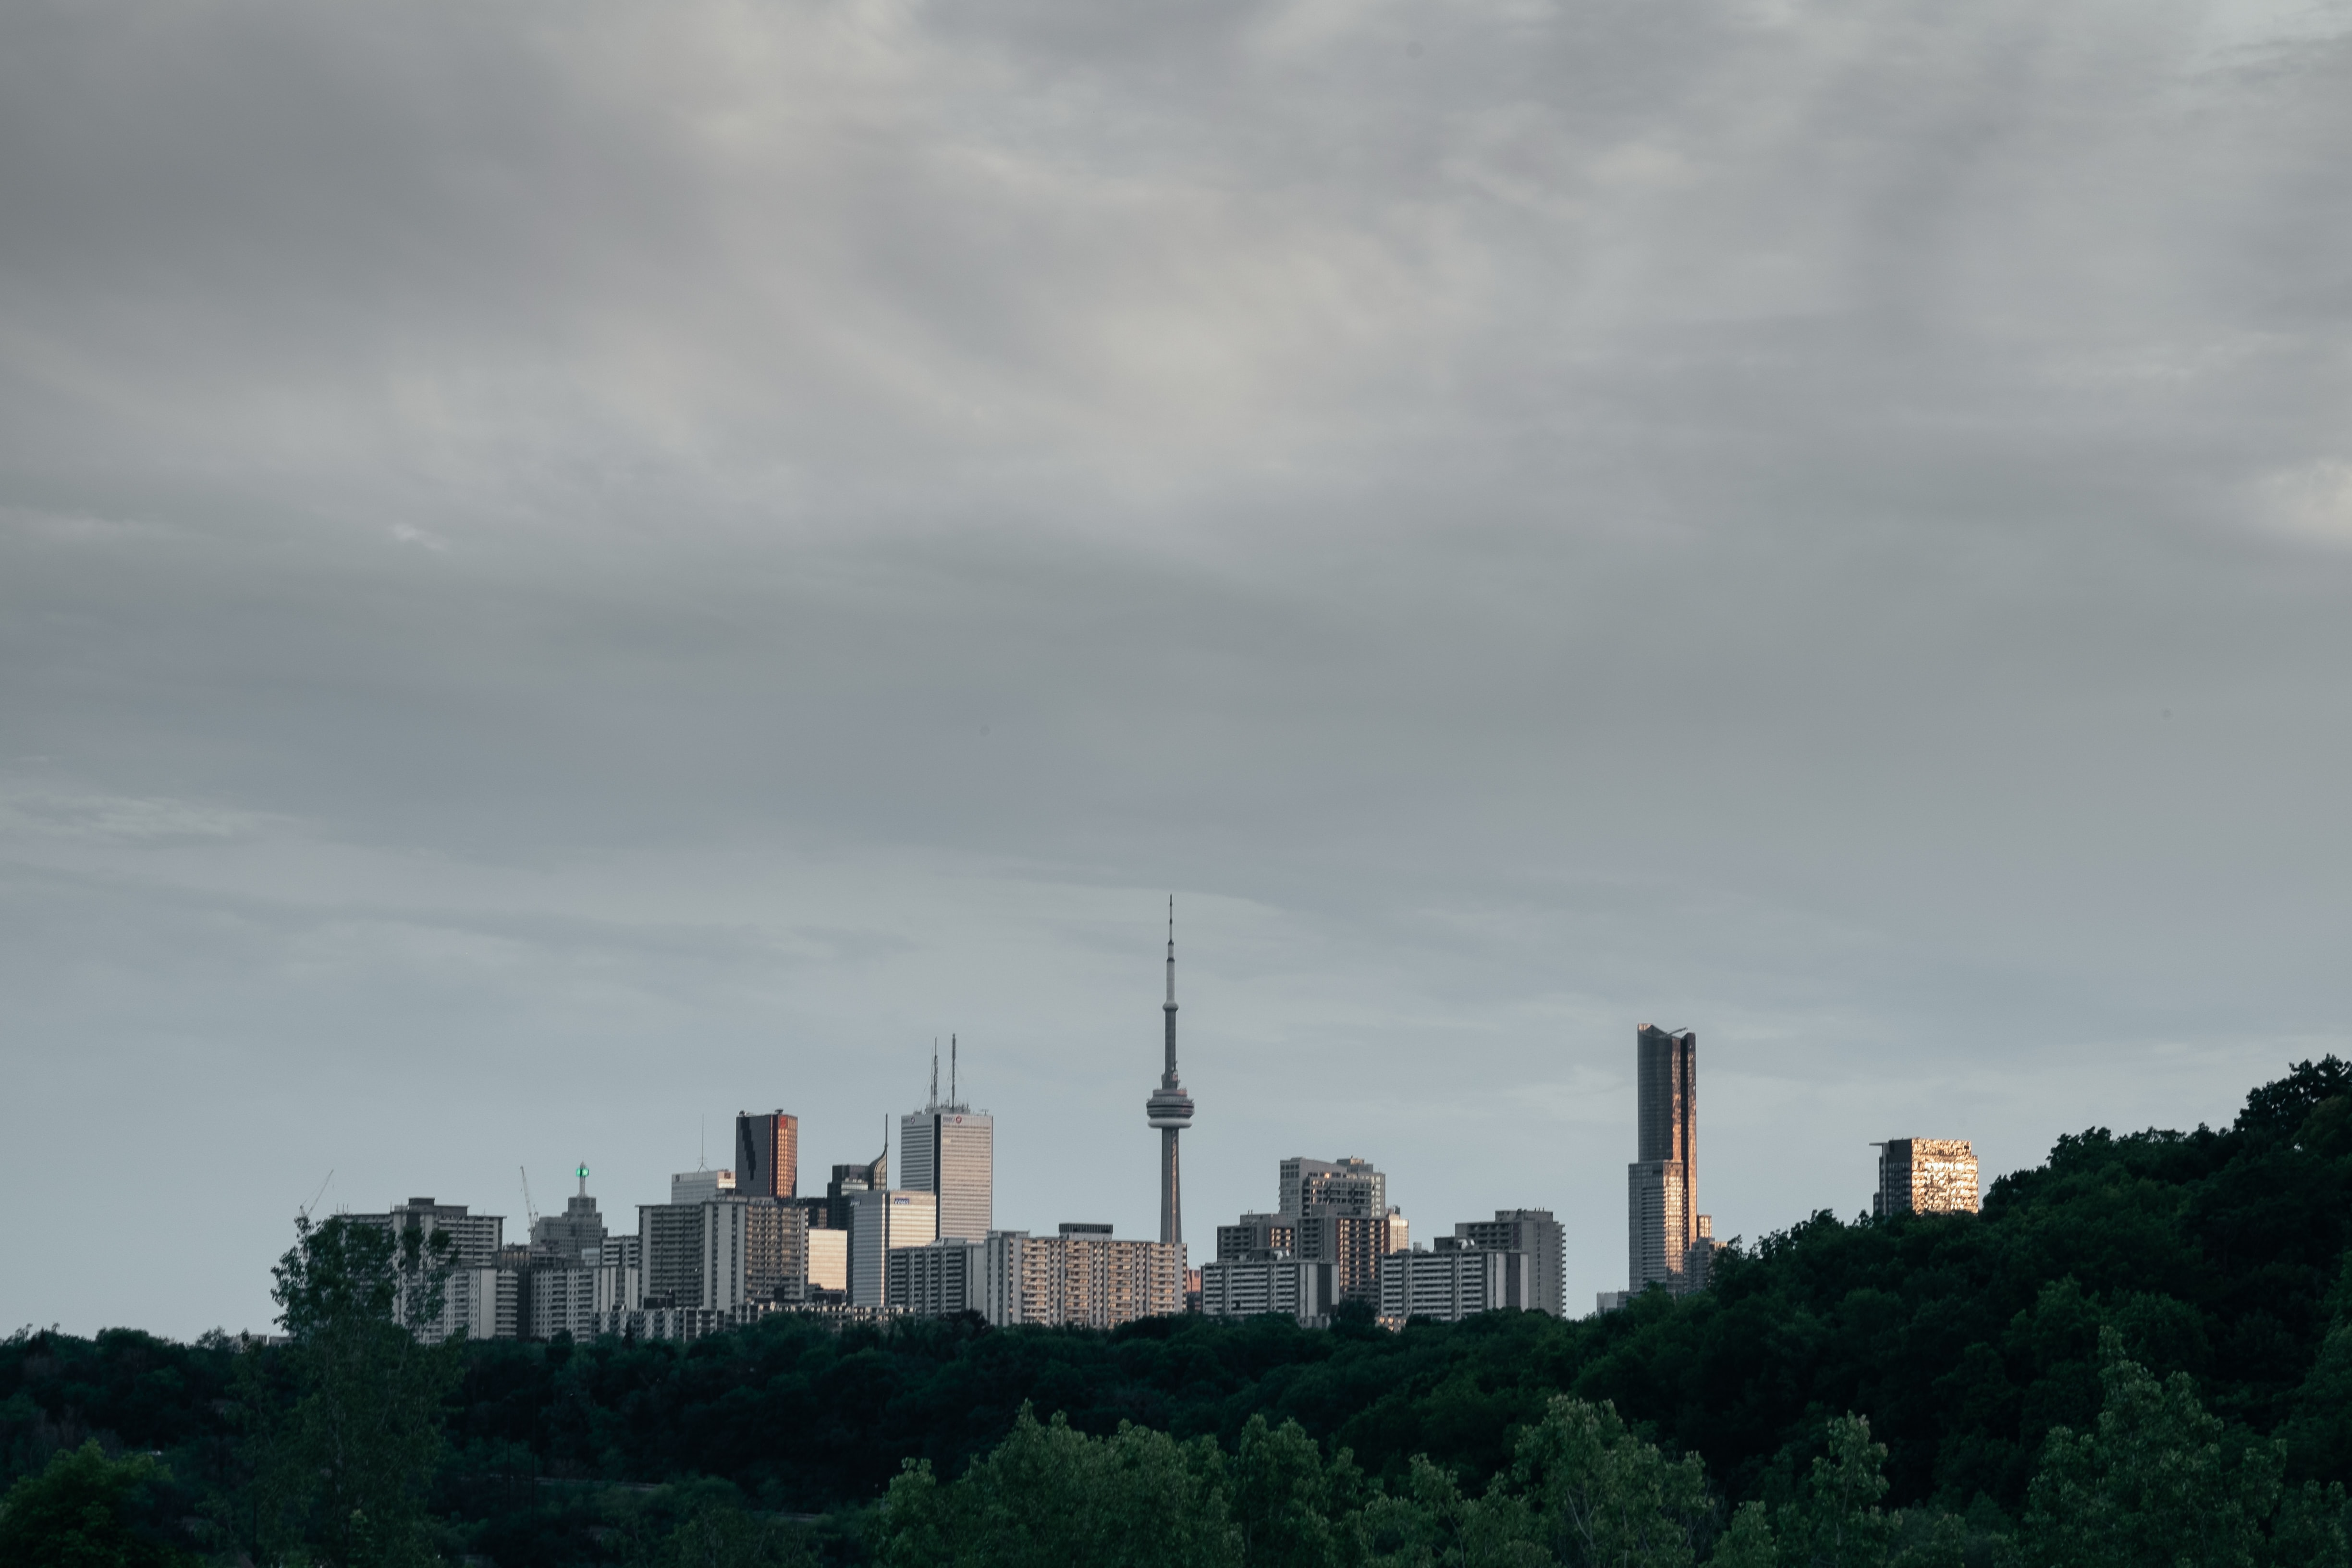 A city skyline with a tall broadcast tower under gray clouds